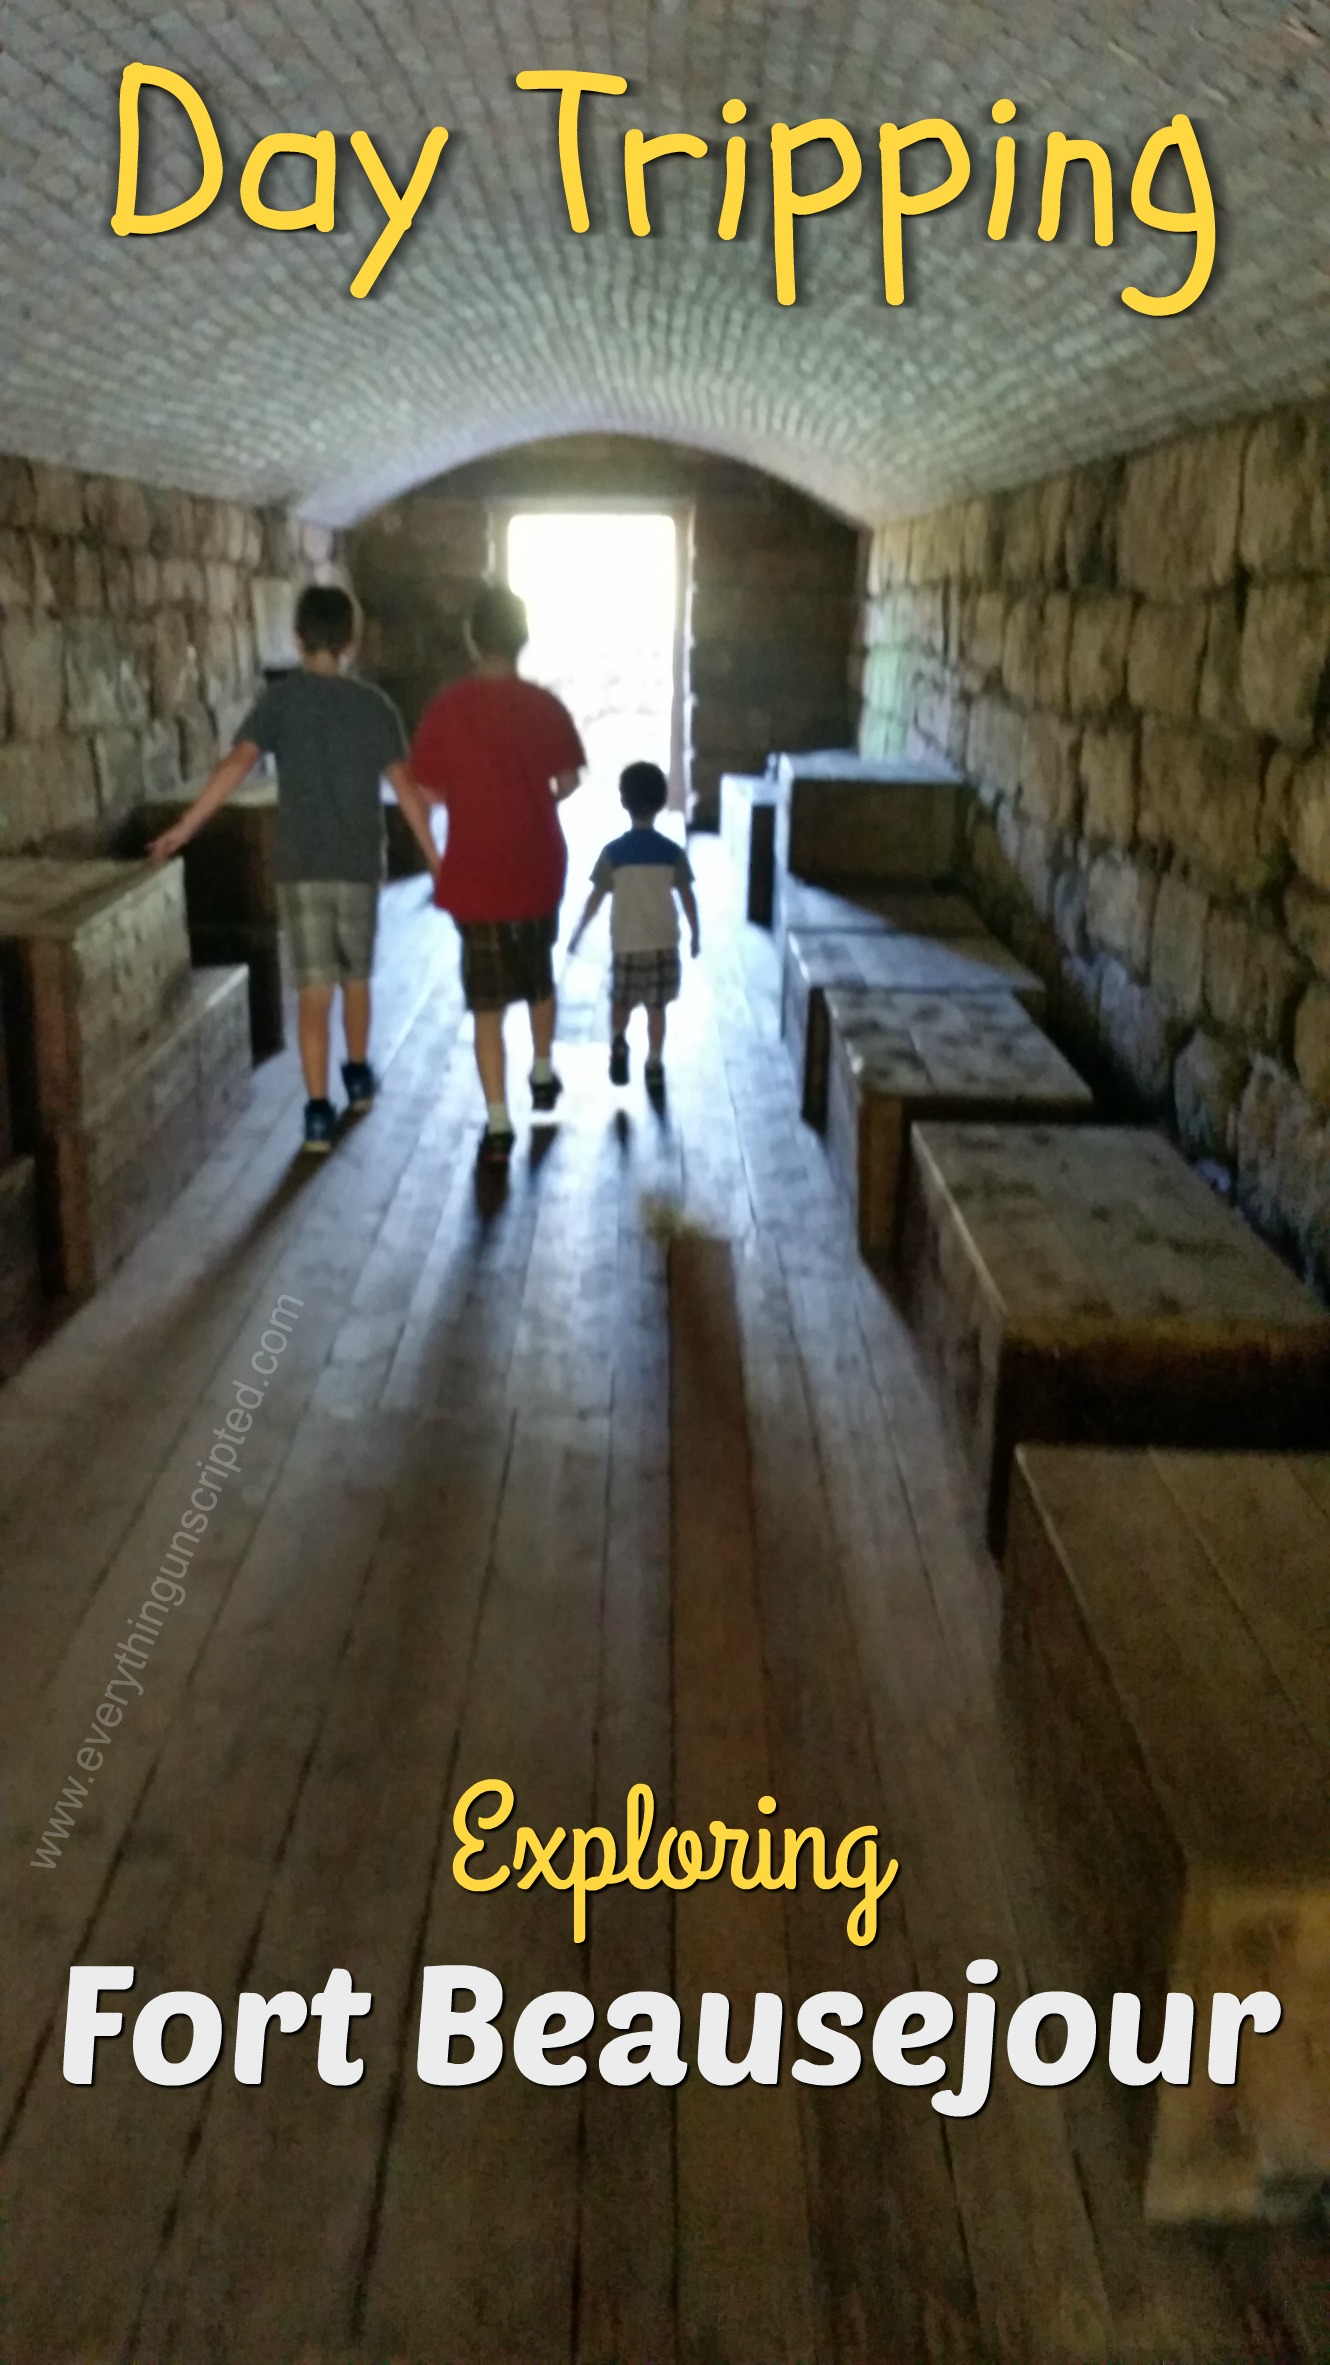 Day Tripping – Fort Beausejour